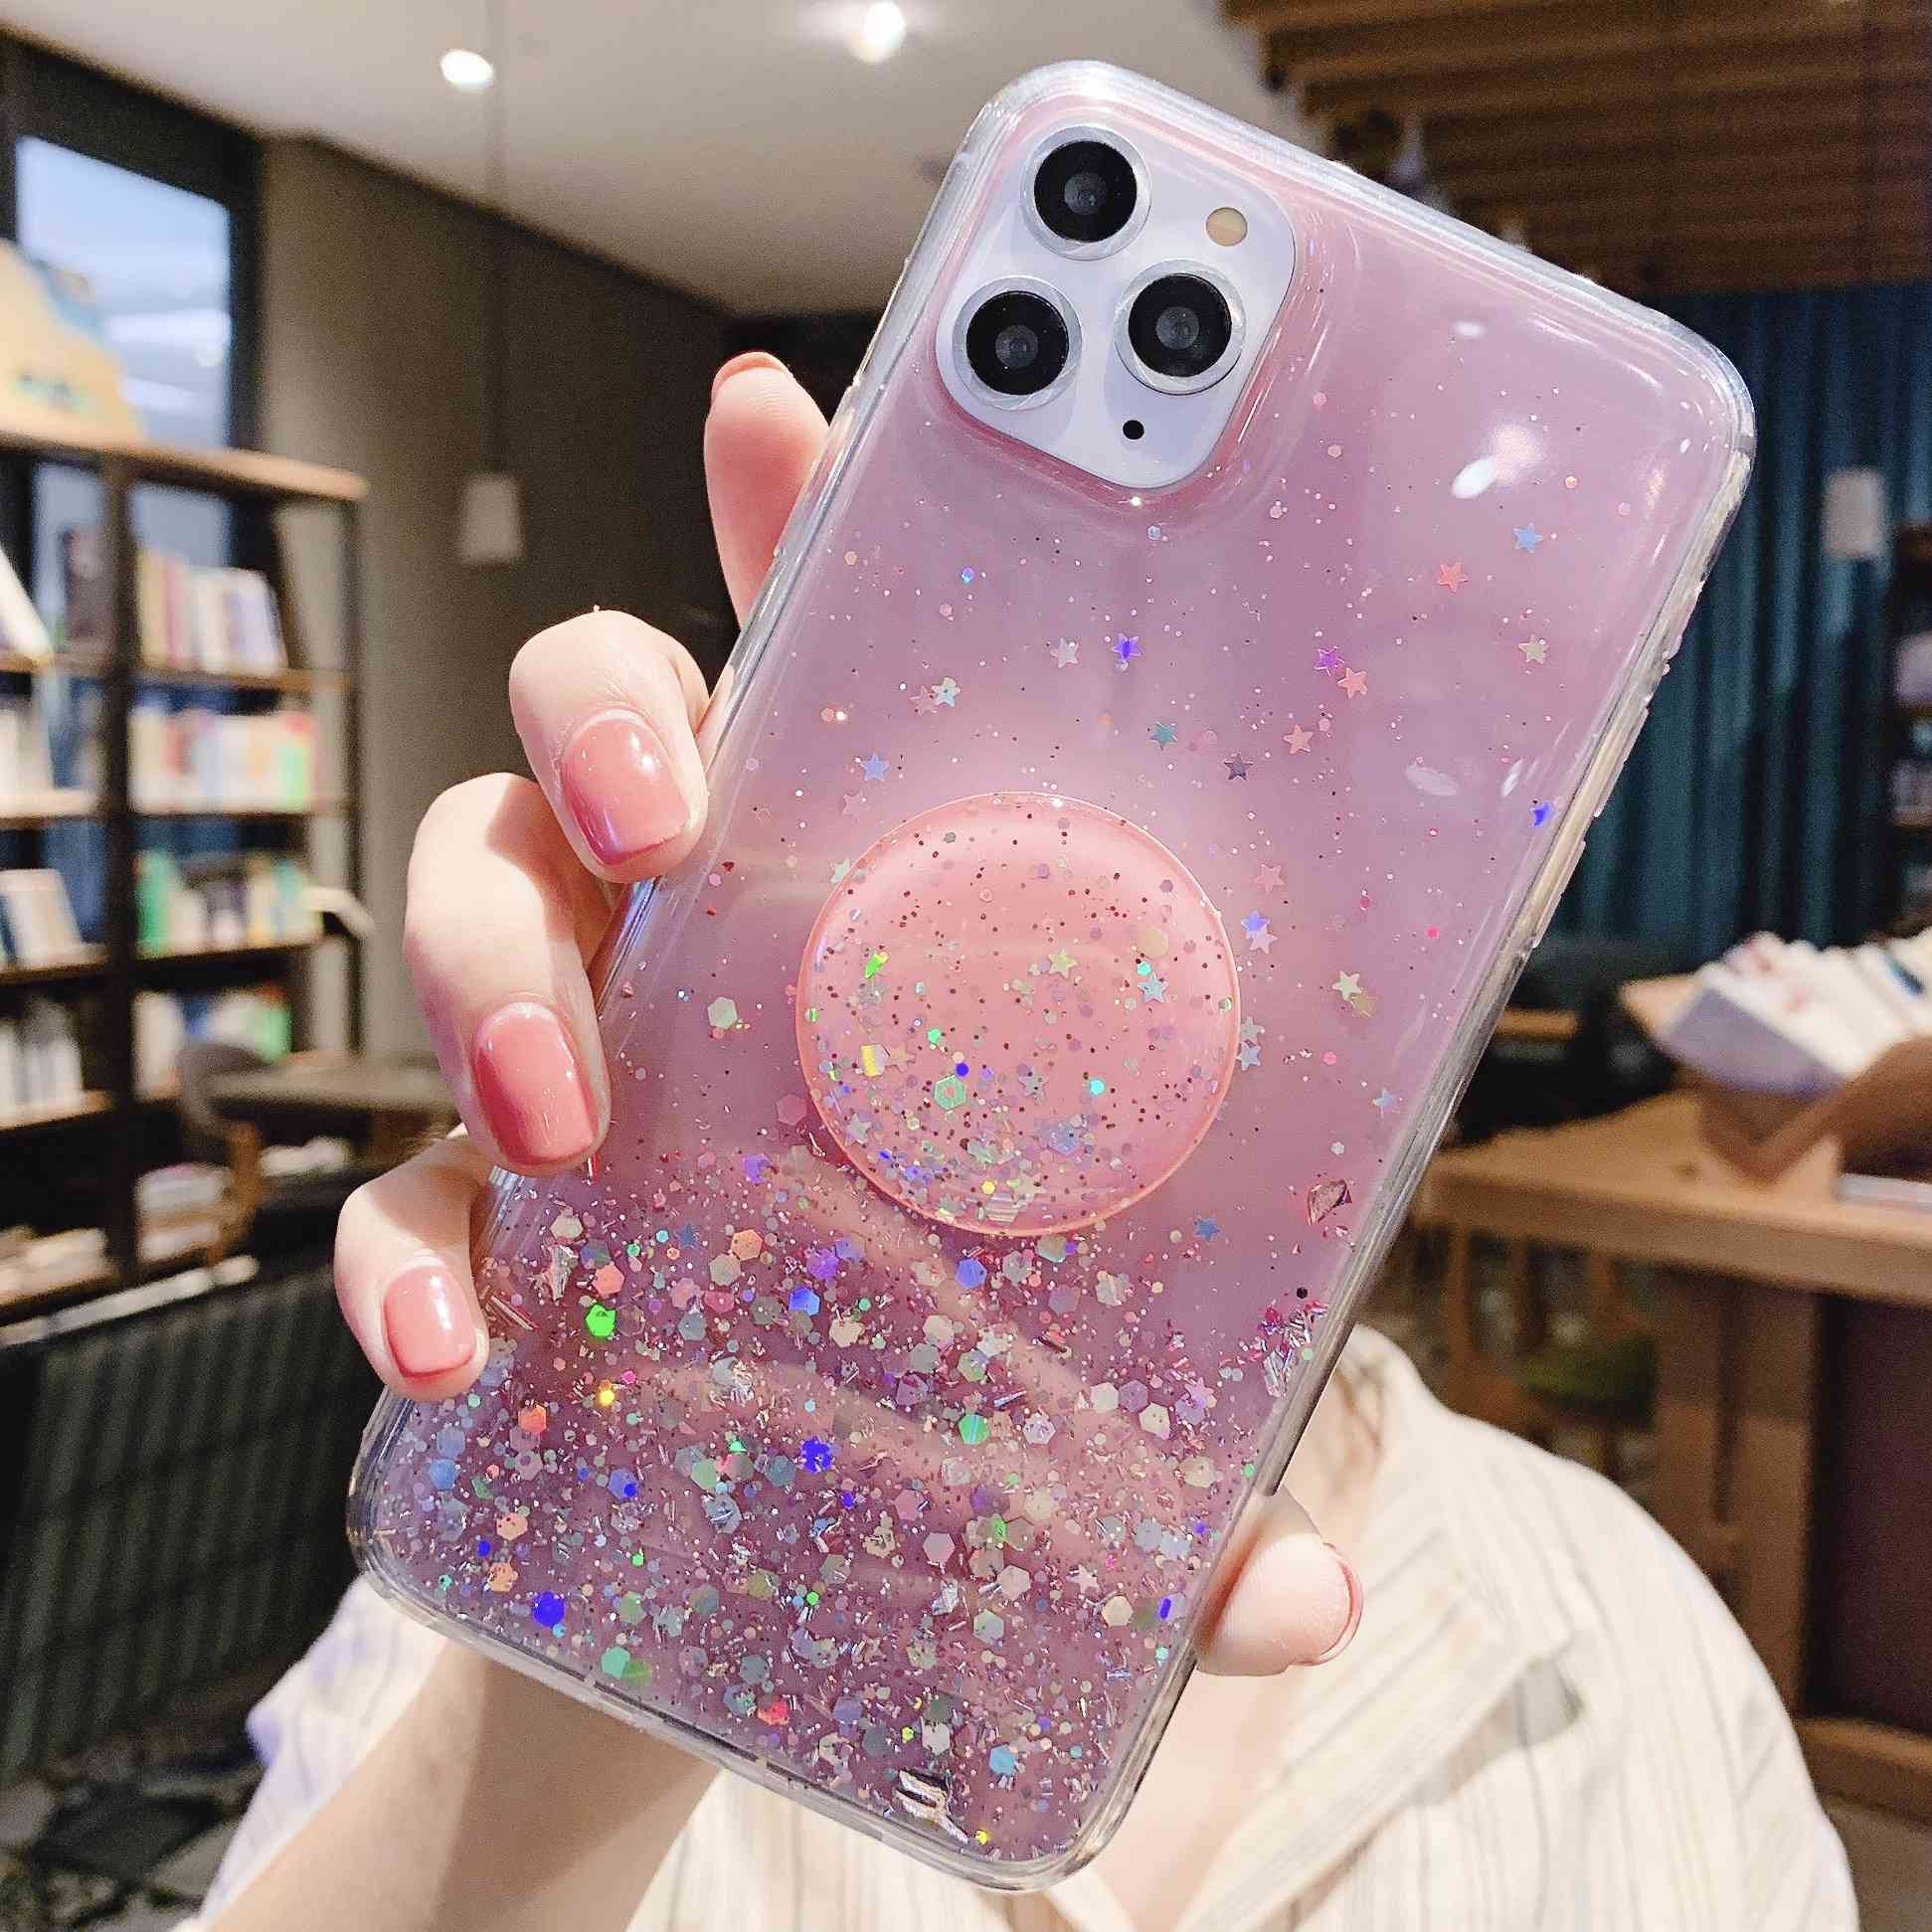 NEW Case For OPPO R15X RX17 Neo Ax7 Pro Reno Z A1 A3S Glitter Sequin Silver Foil With Holder Clear Soft Cover Star Sparkle Coque image